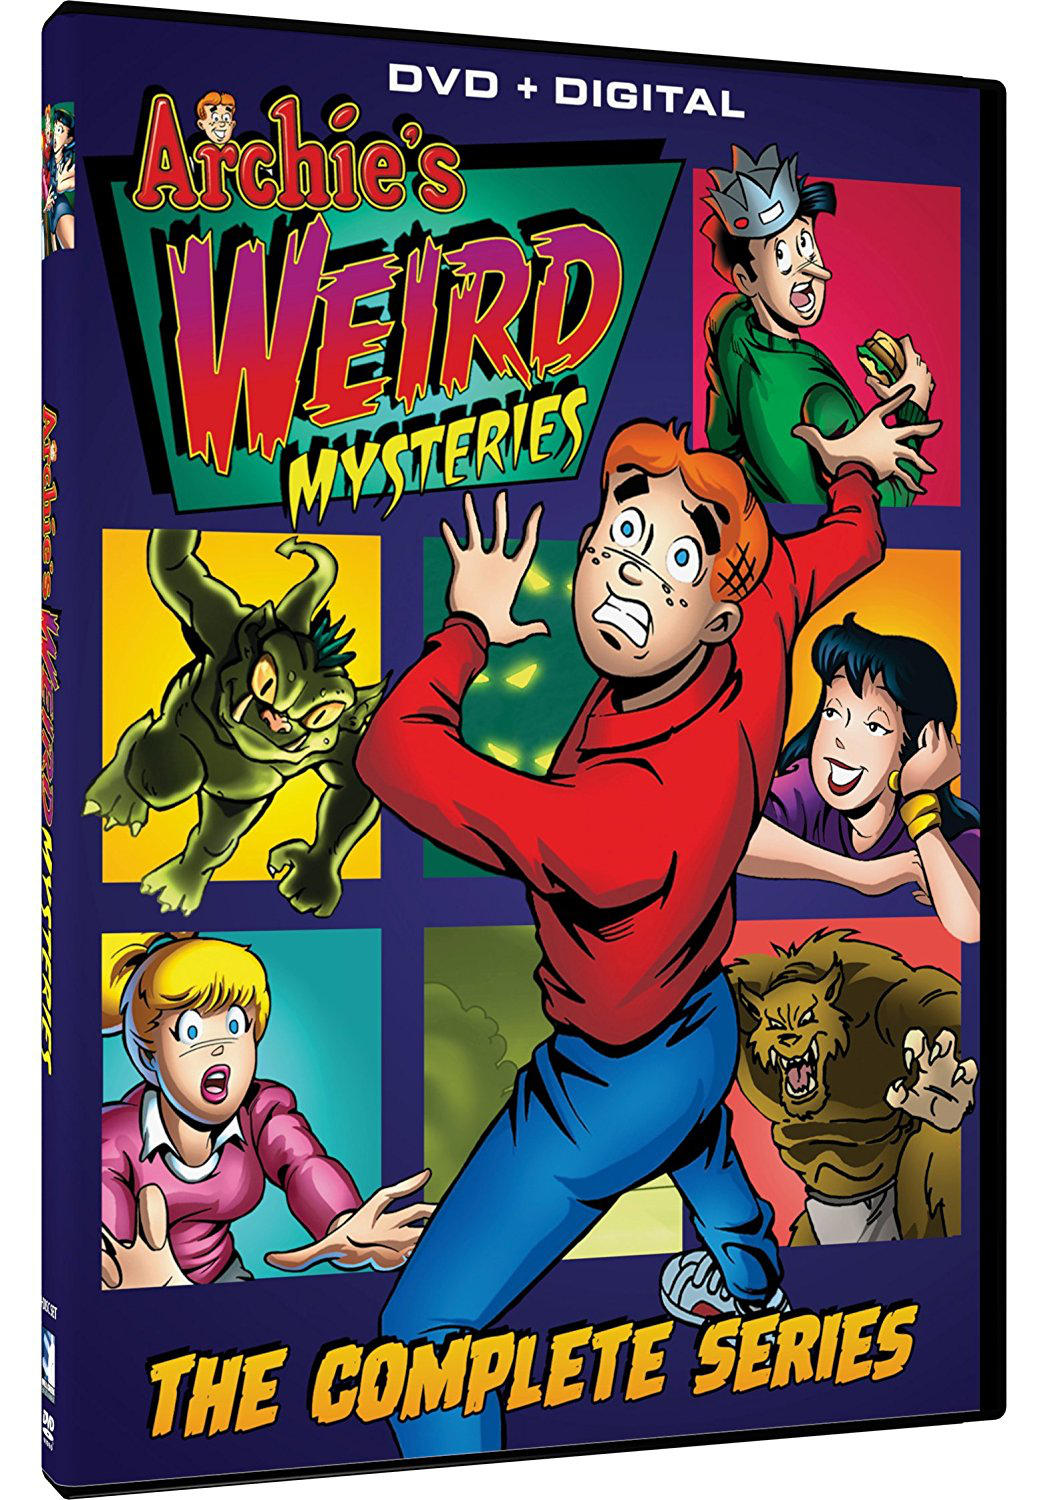 ArchieS Weird Mysteries